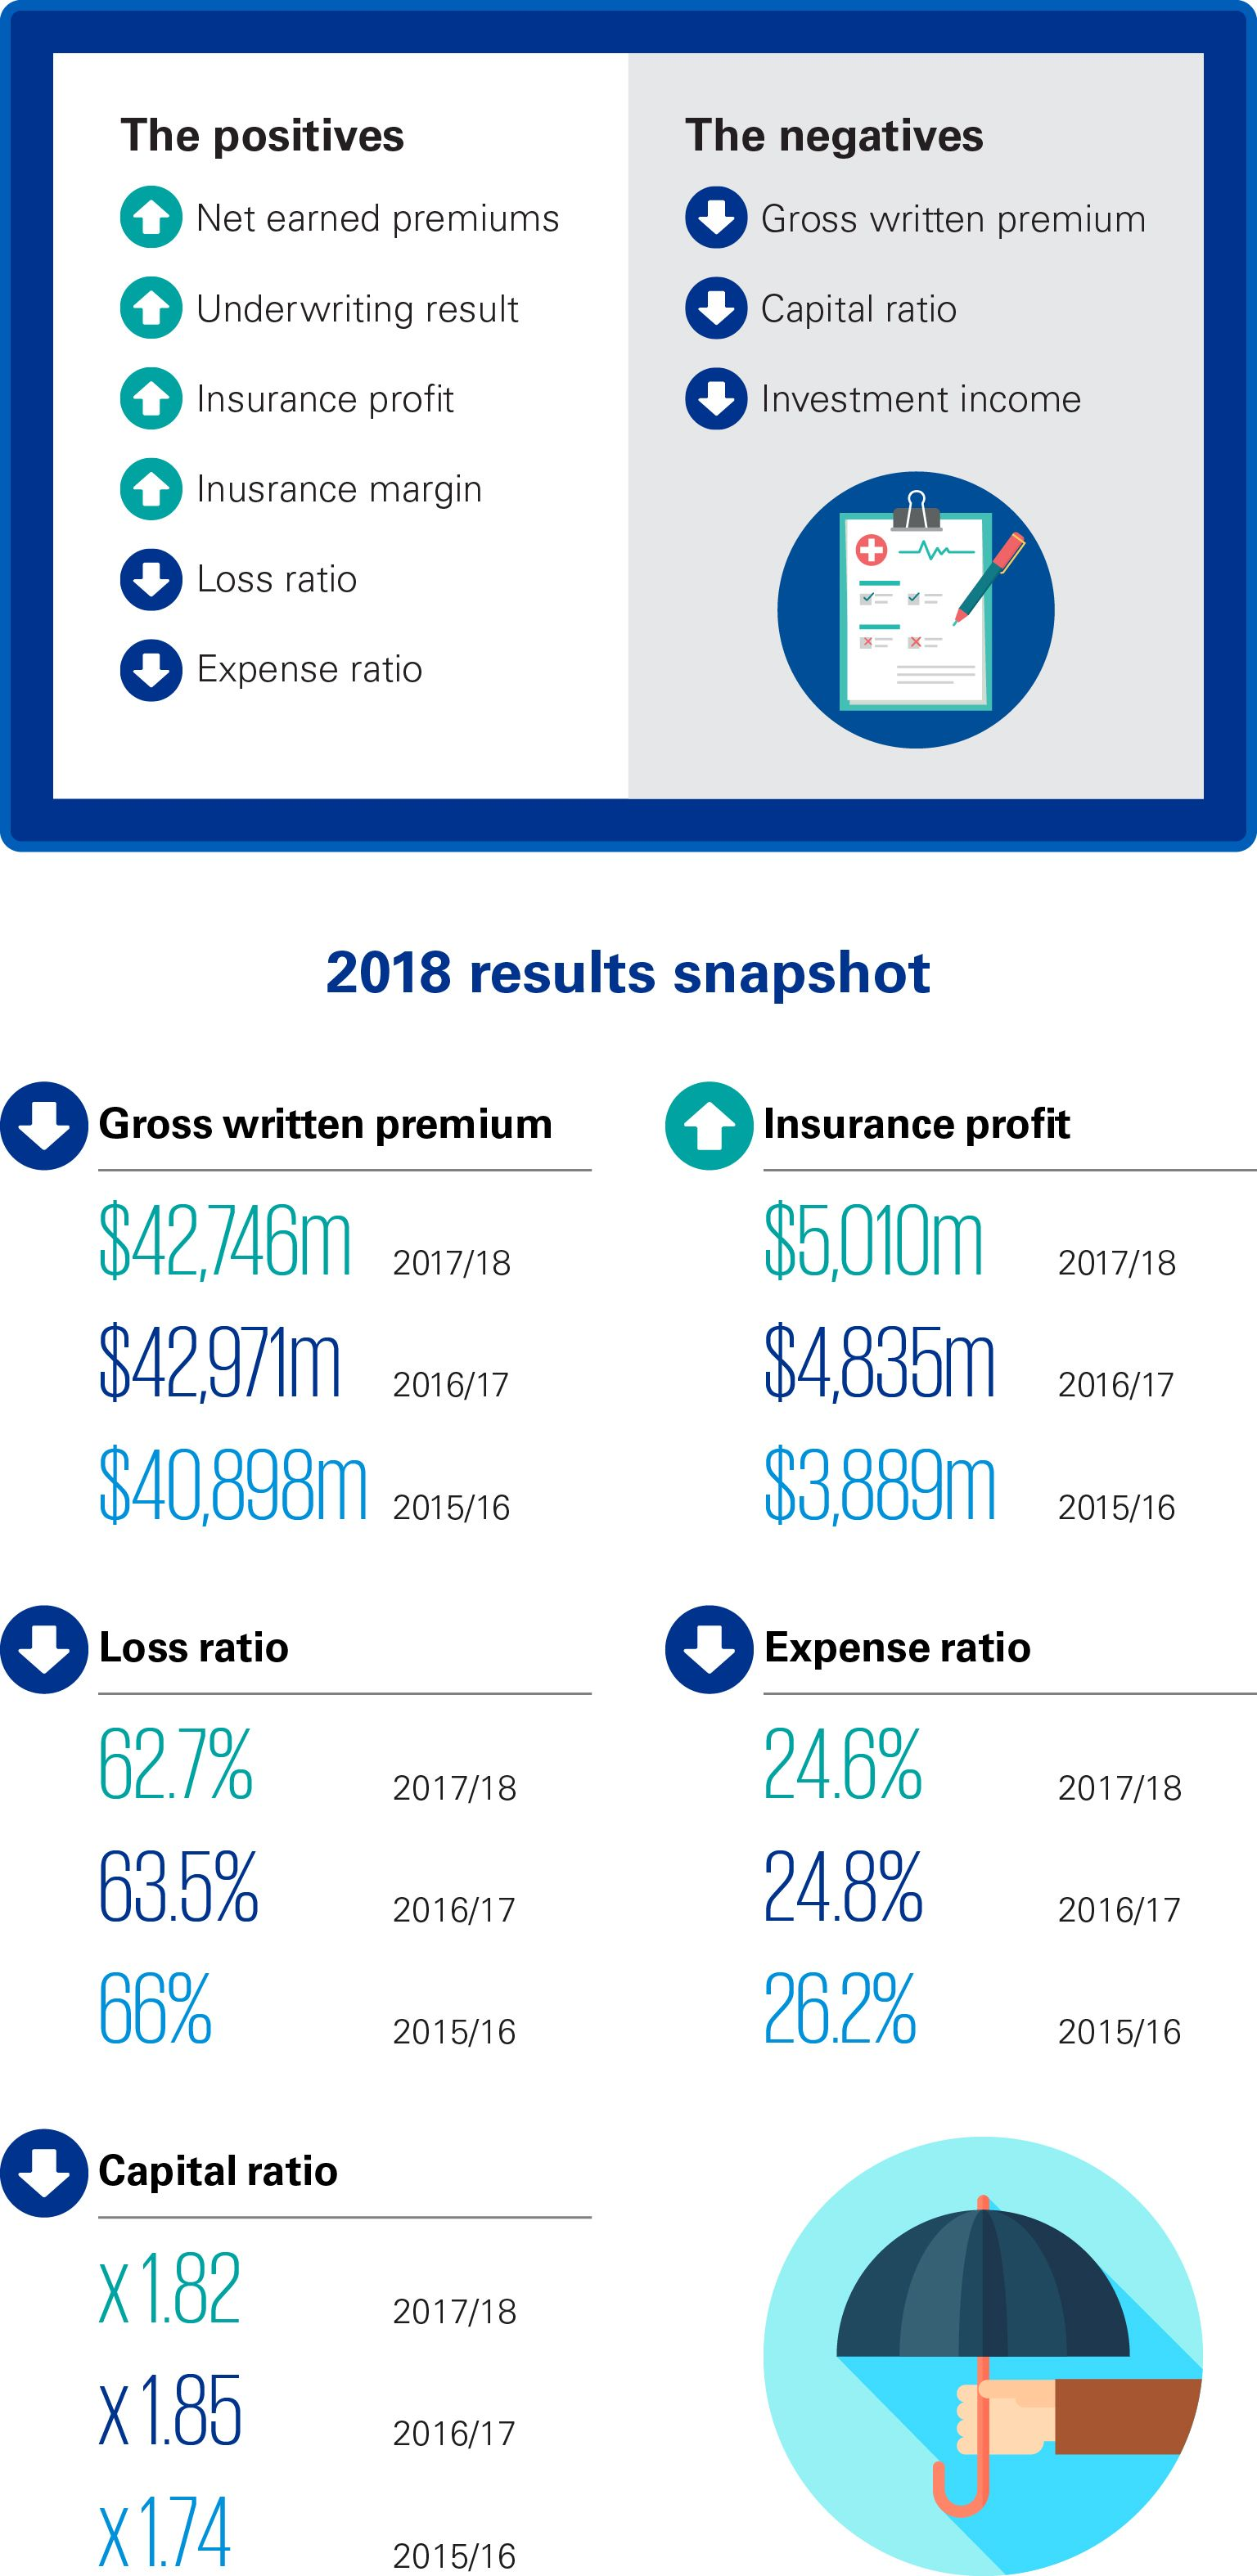 General Insurance Industry Review 2018 infographic